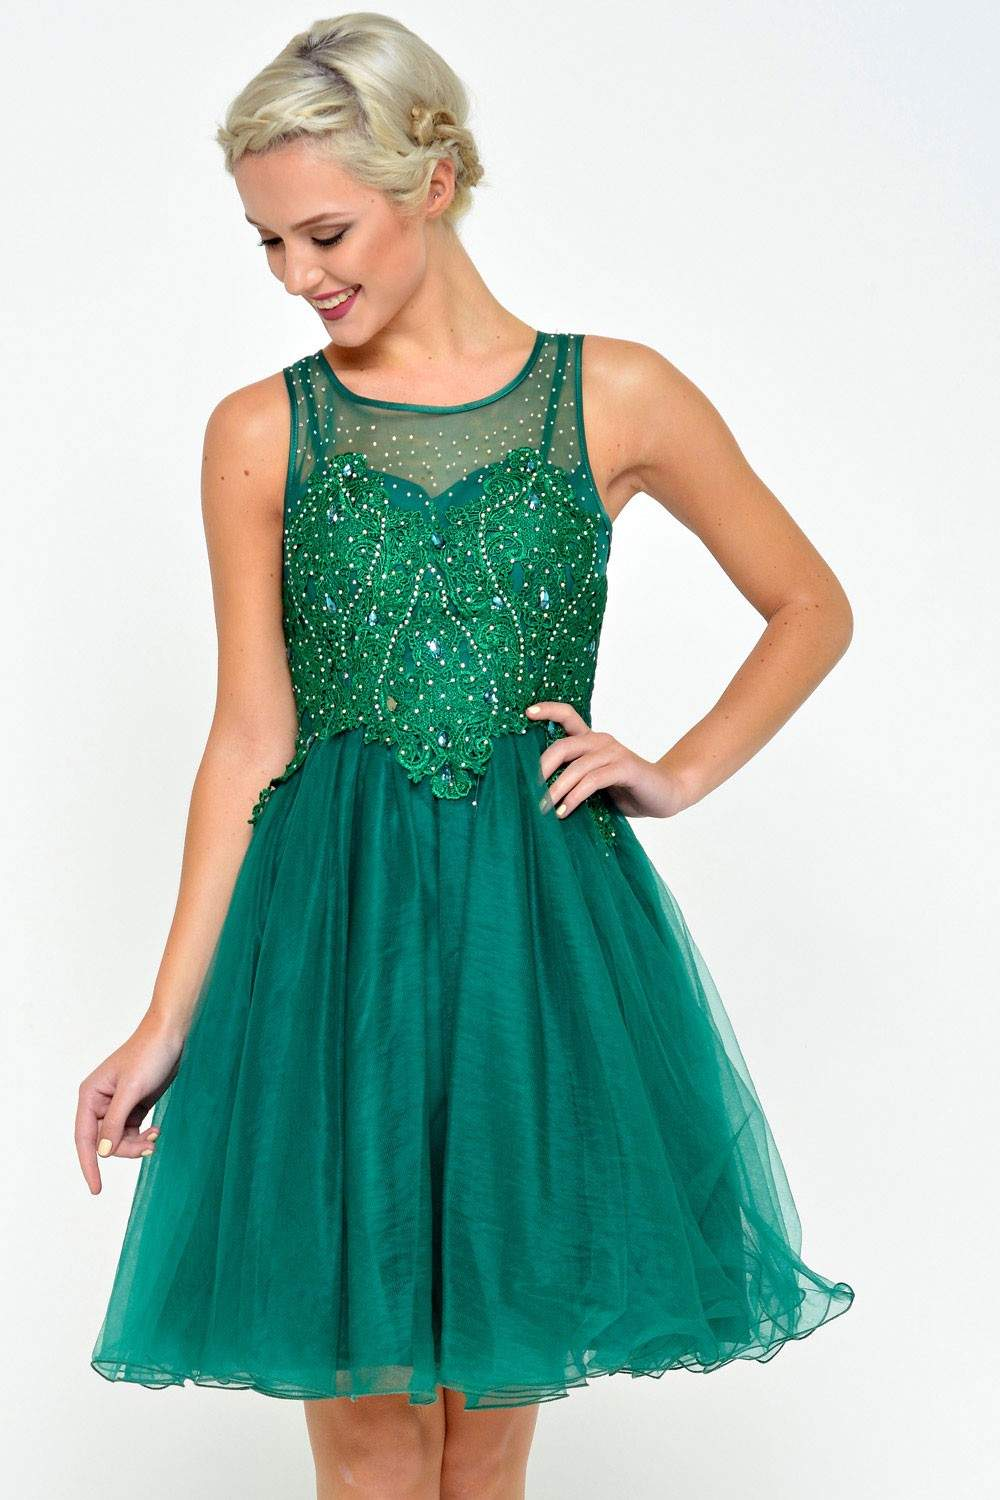 Charms Anna Embellished Tulle Prom Dress in Emerald | iCLOTHING